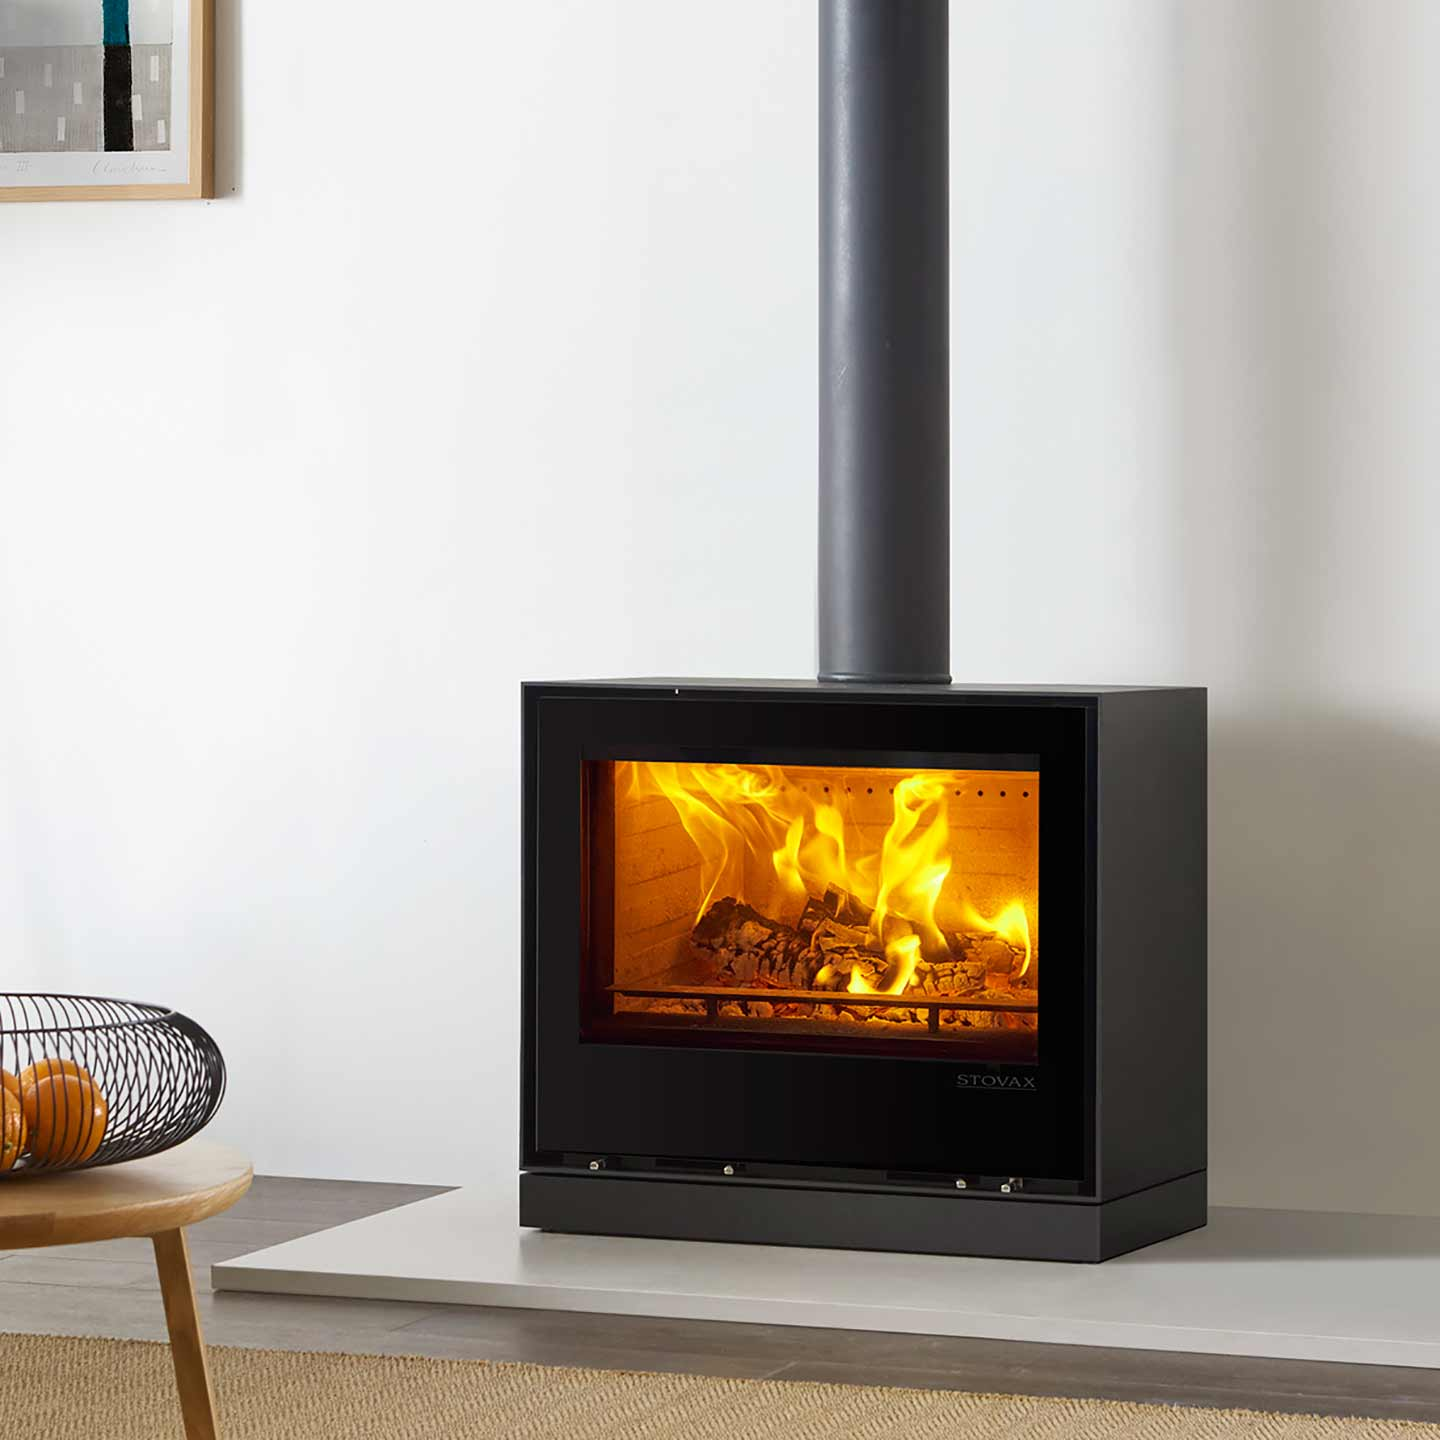 Stovax Elise 680 Glass Wood Burning Stove The Stove Site